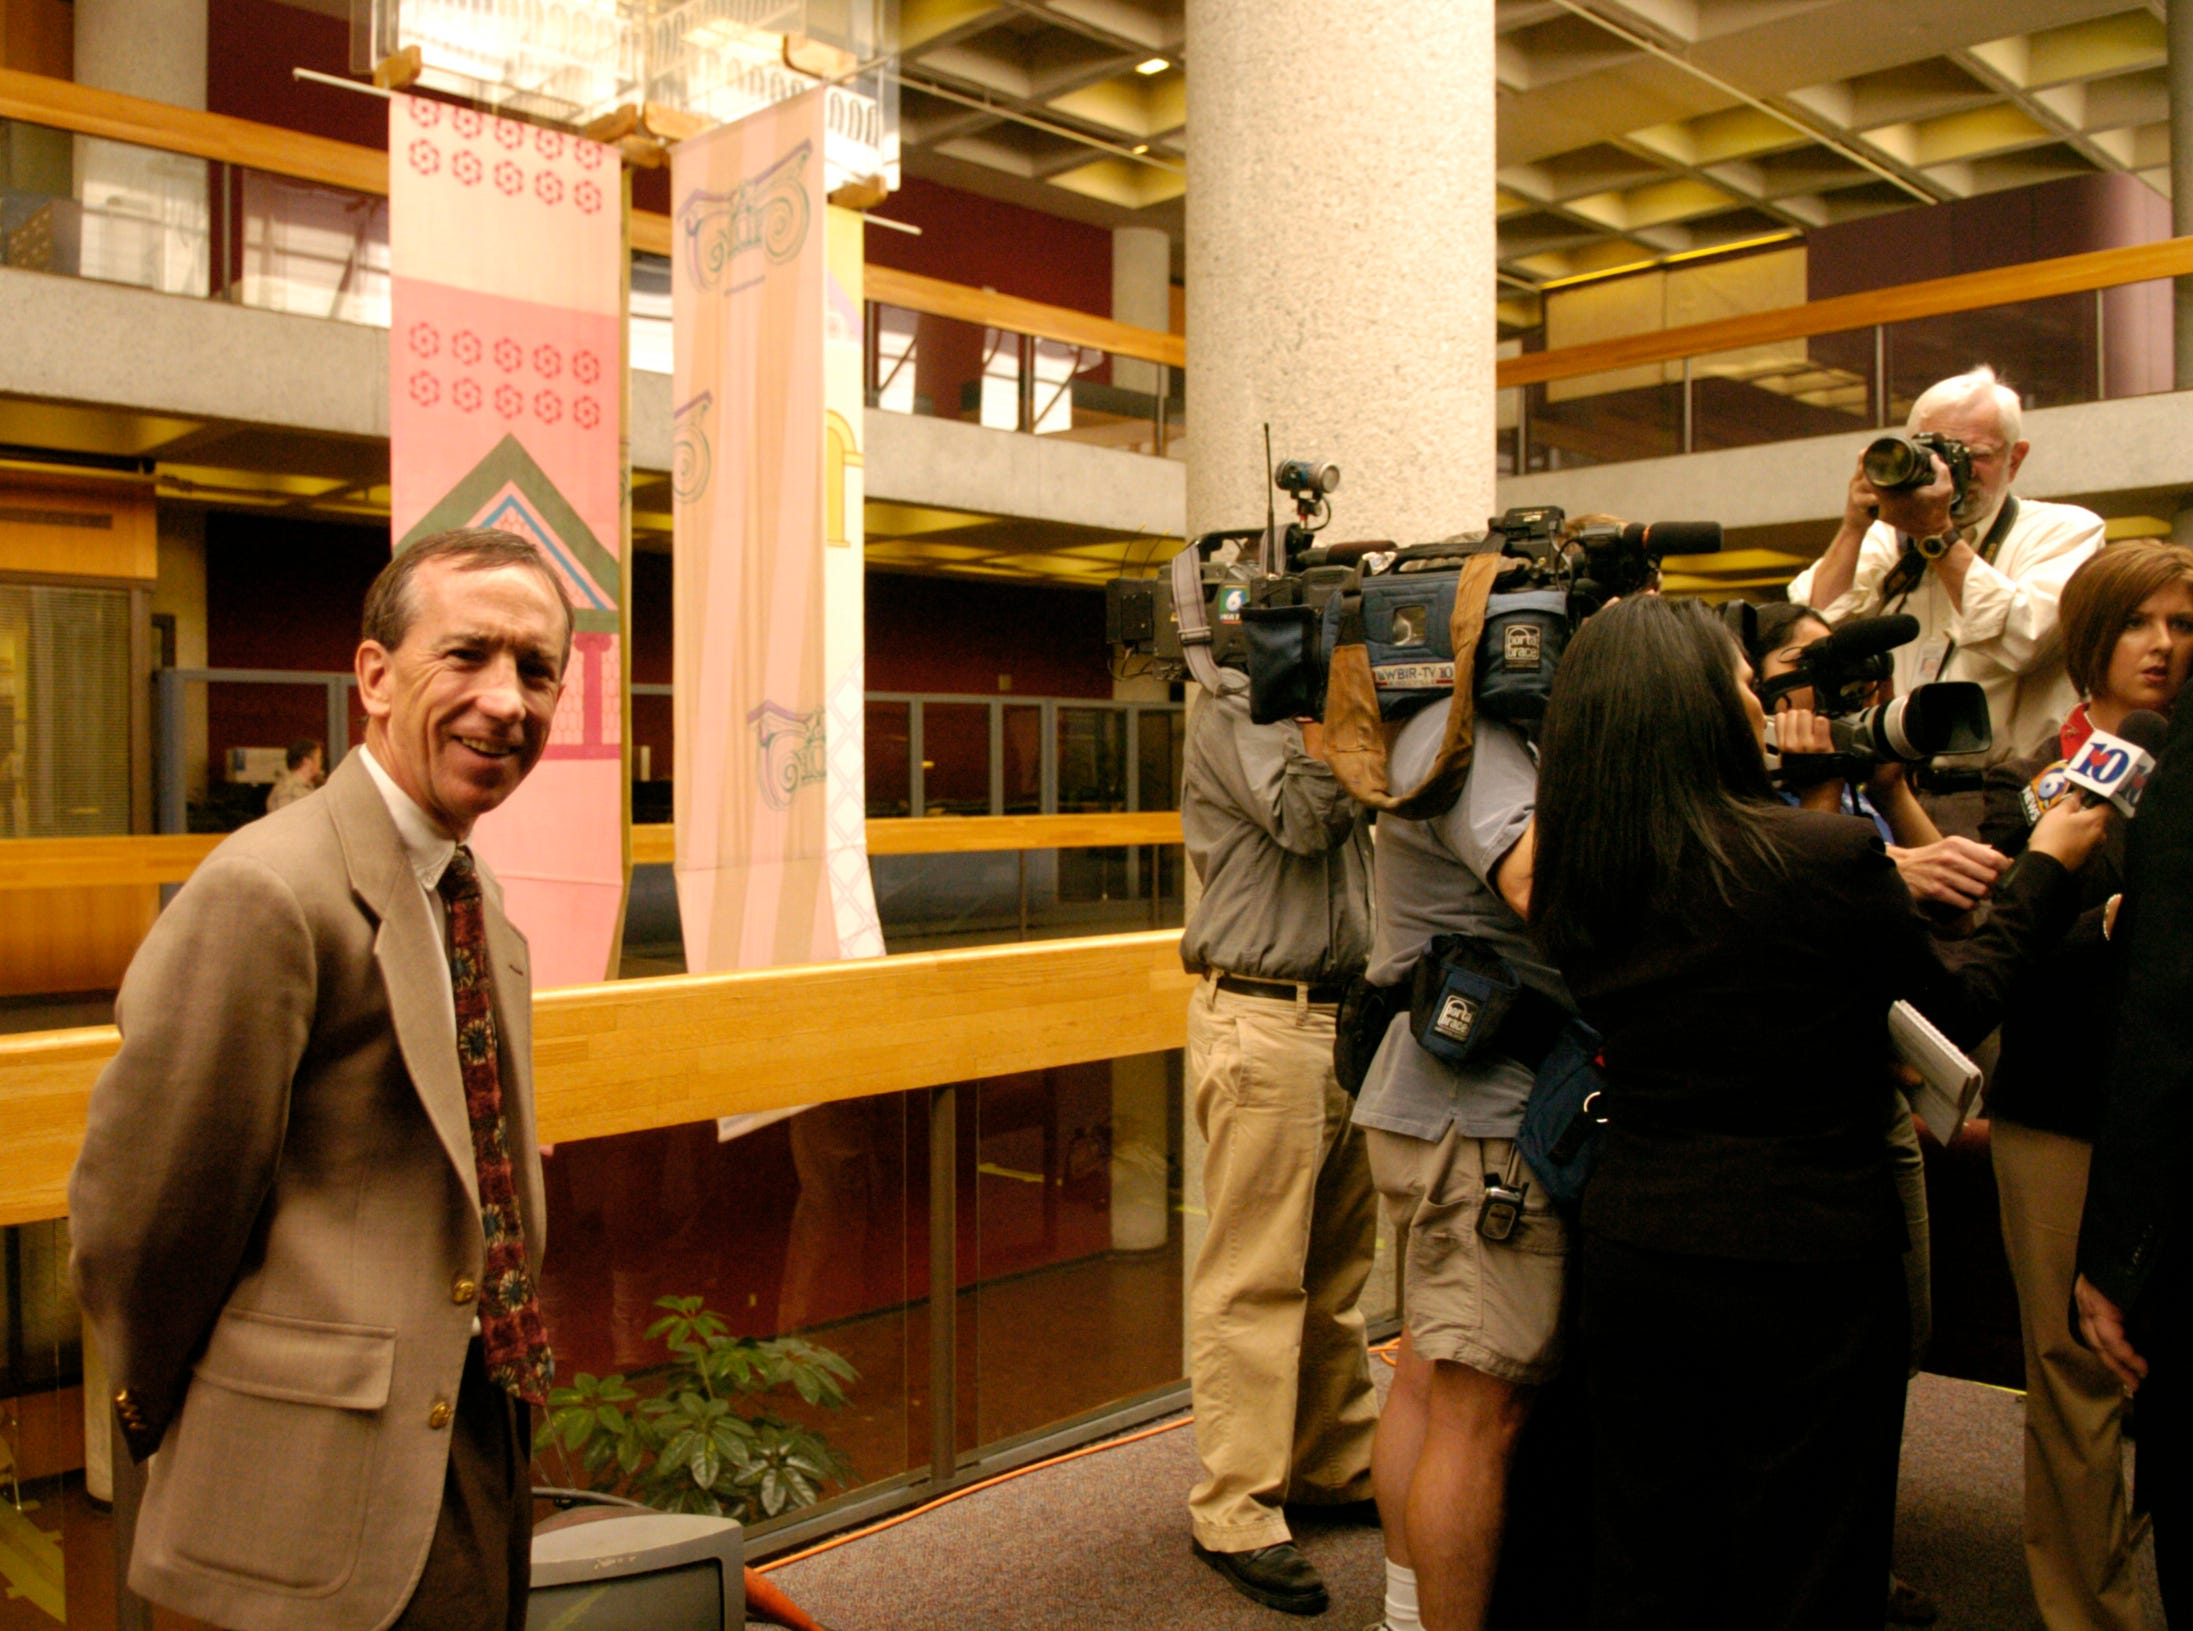 Jurors today awarded News Sentinel Editor Jack McElroy and nine citizens victory against the Knox County Commission by ruling that Knox County commissioners violated the Tennessee Open Meetings Act in Jan. 31 meeting that replaced 12 term-limited officeholders. Tuesday, October 2, 2007